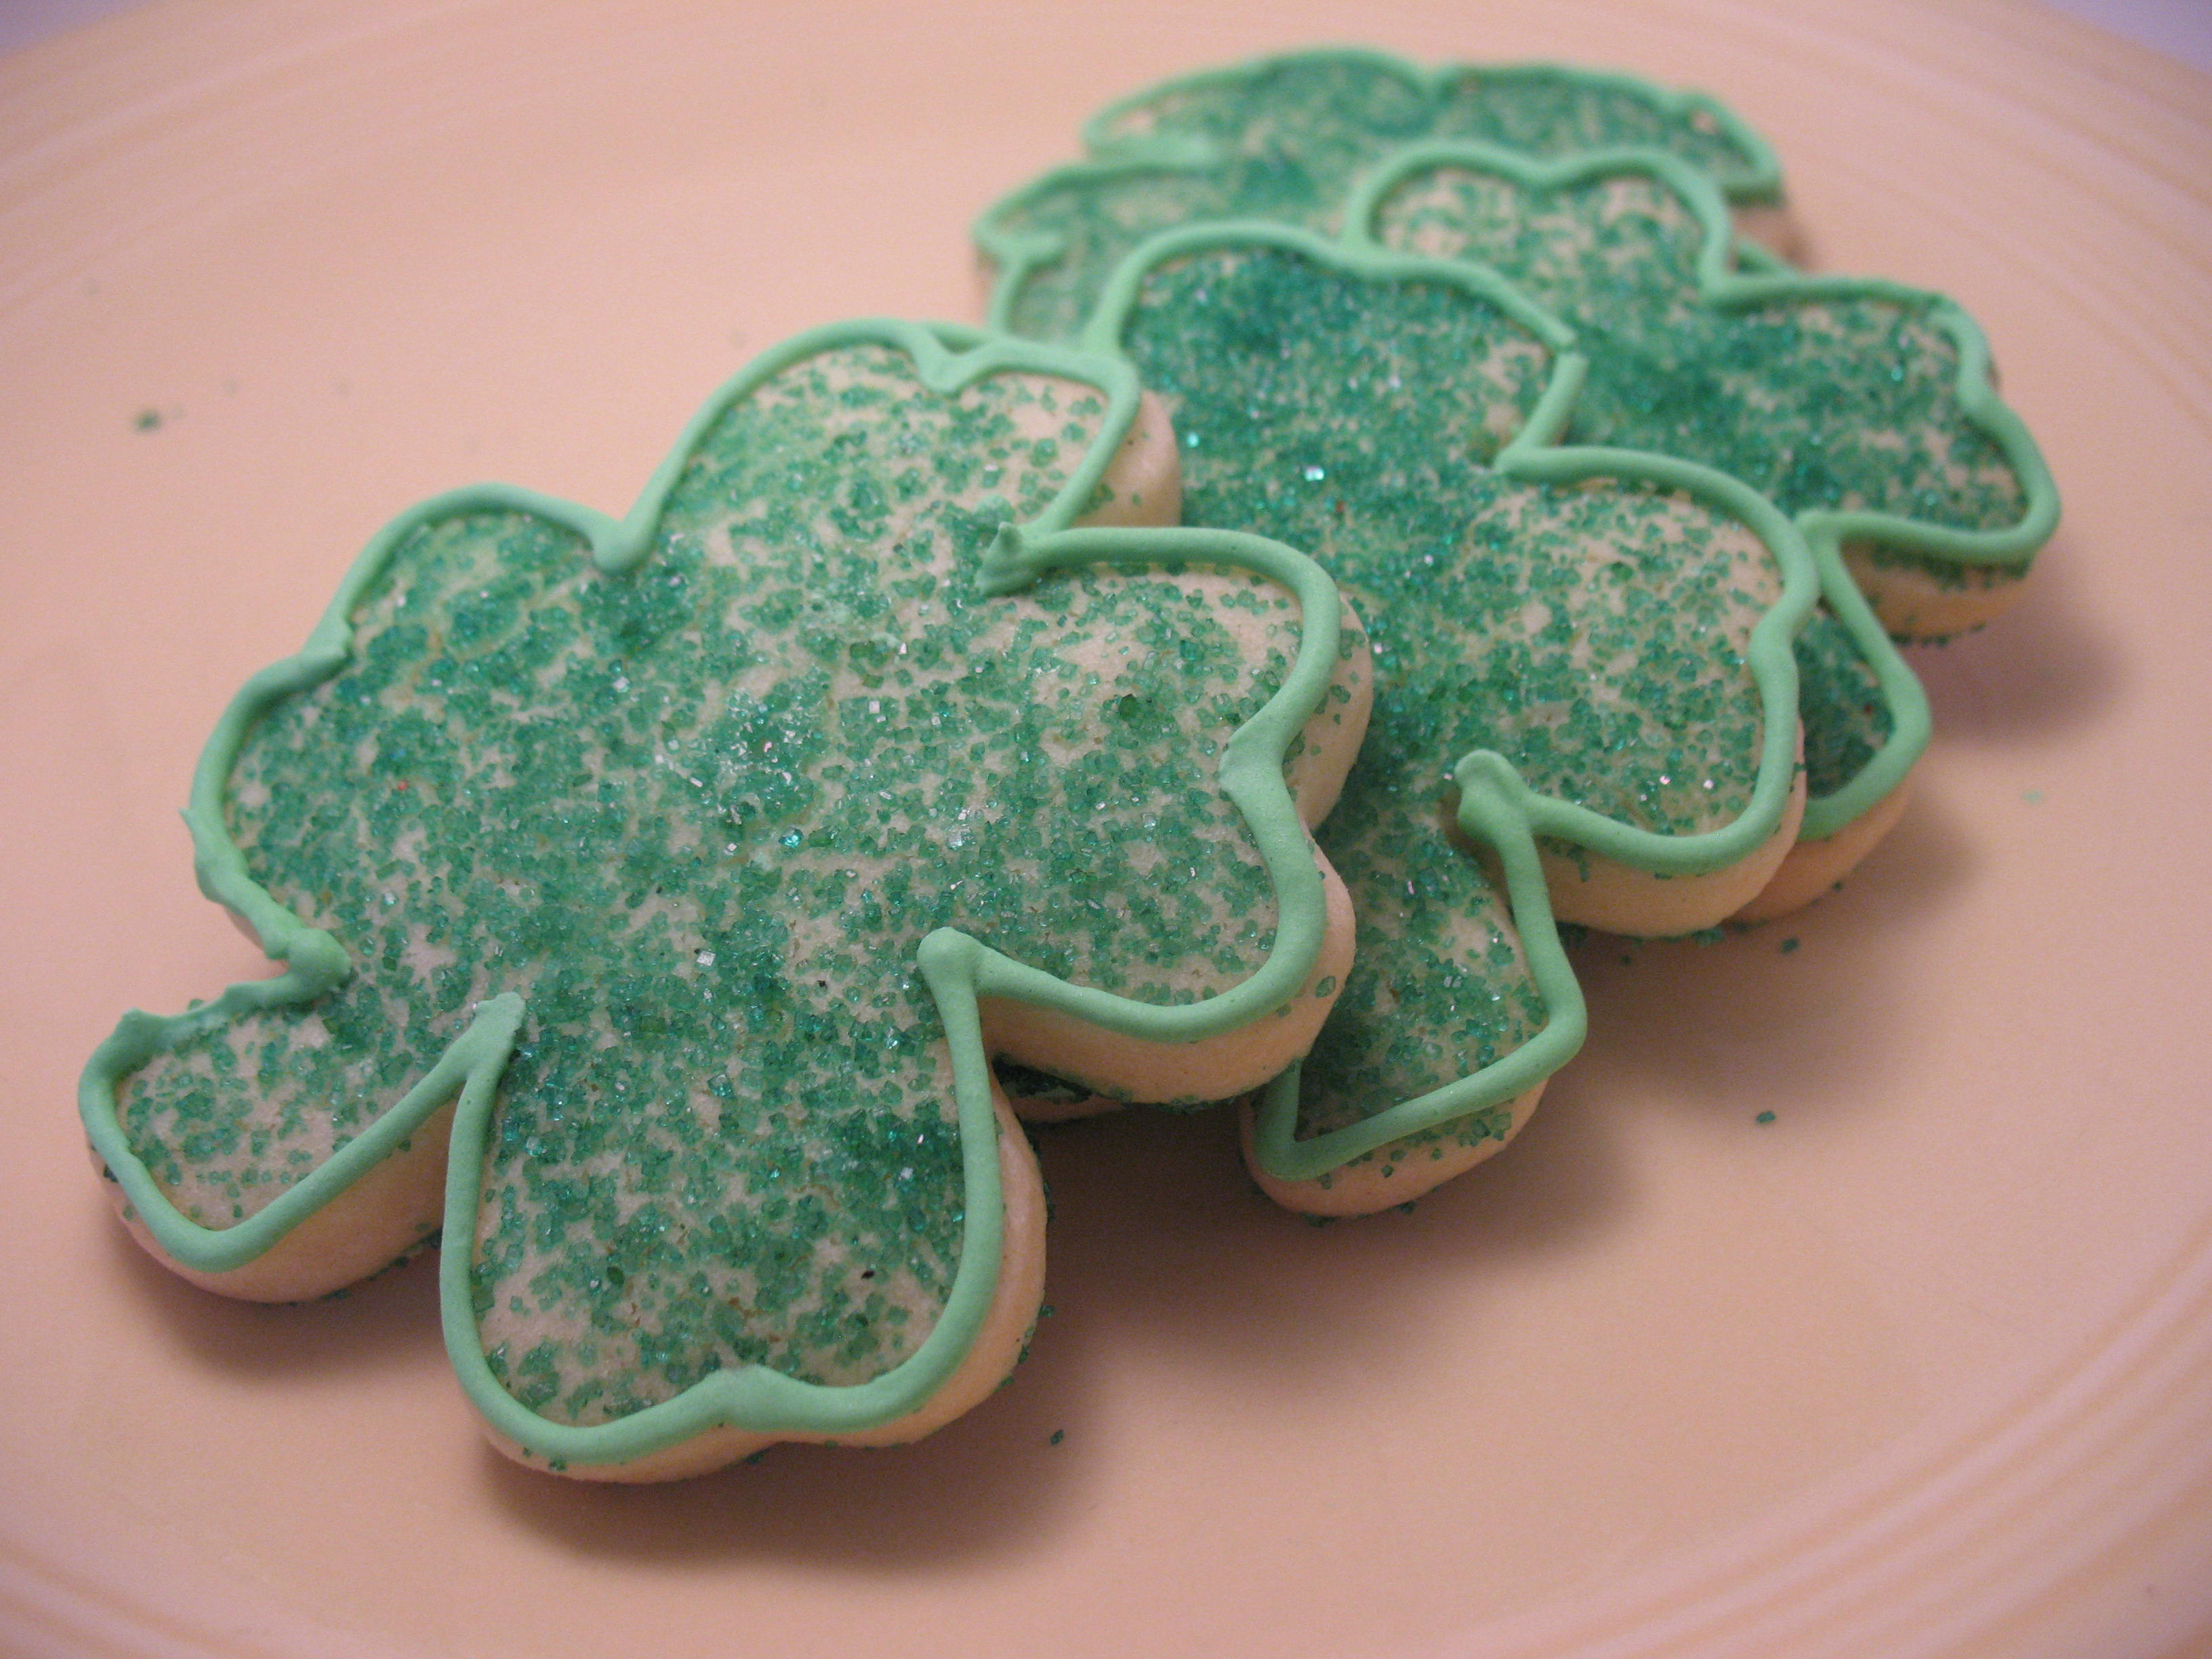 Sugar cut-out cookies for St. Patrick's Day